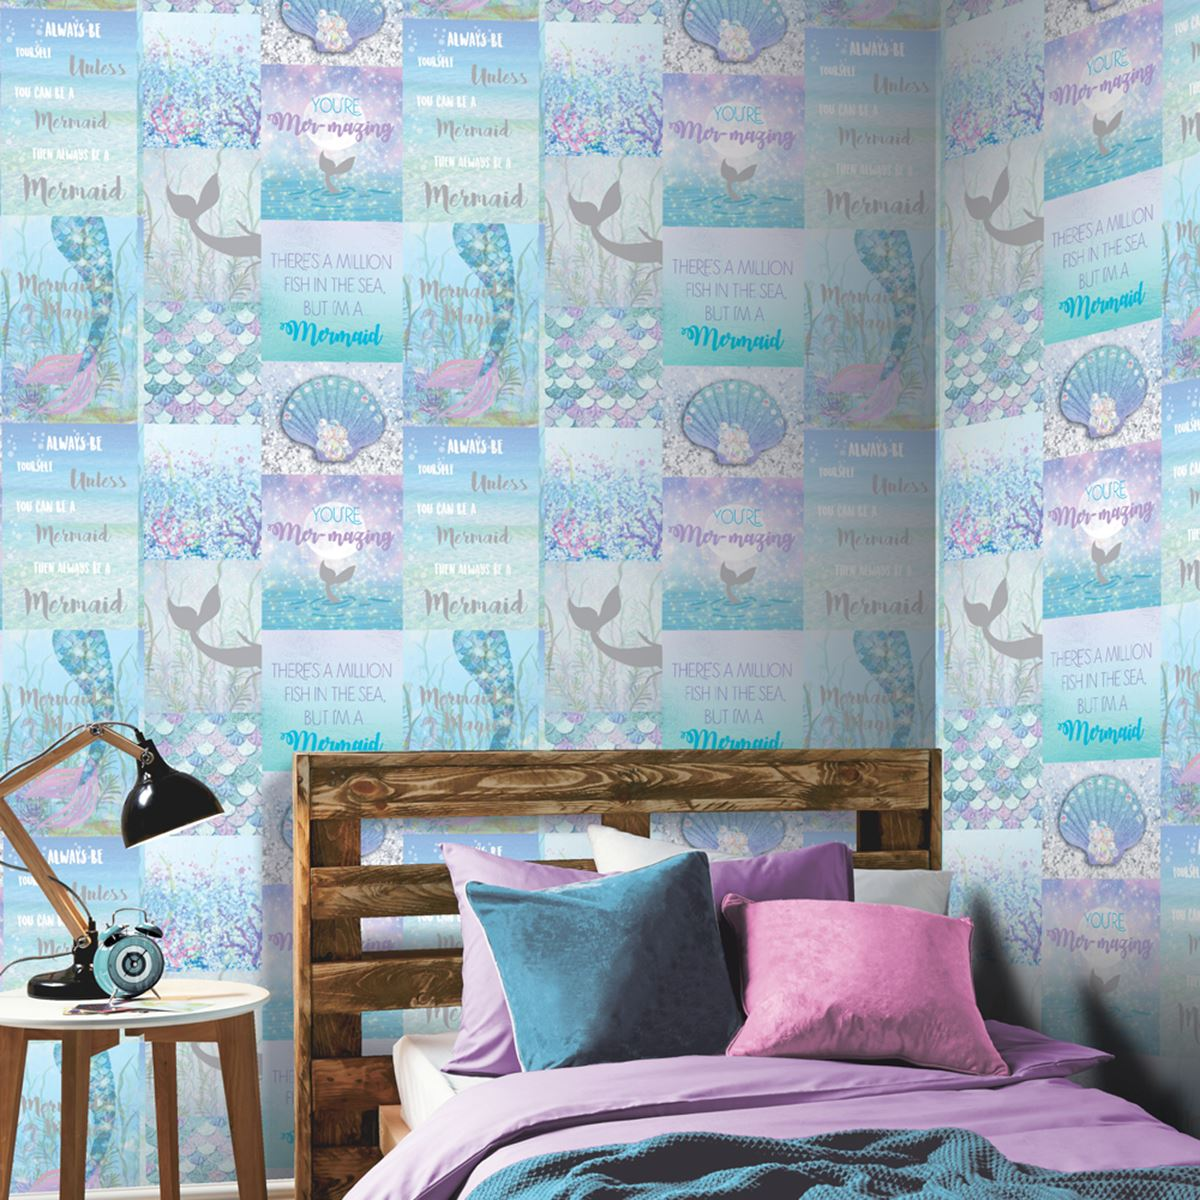 Kids Bedroom Teal Wallpaper Girls Nursery Decor Unicorns Mermaids And More Ebay